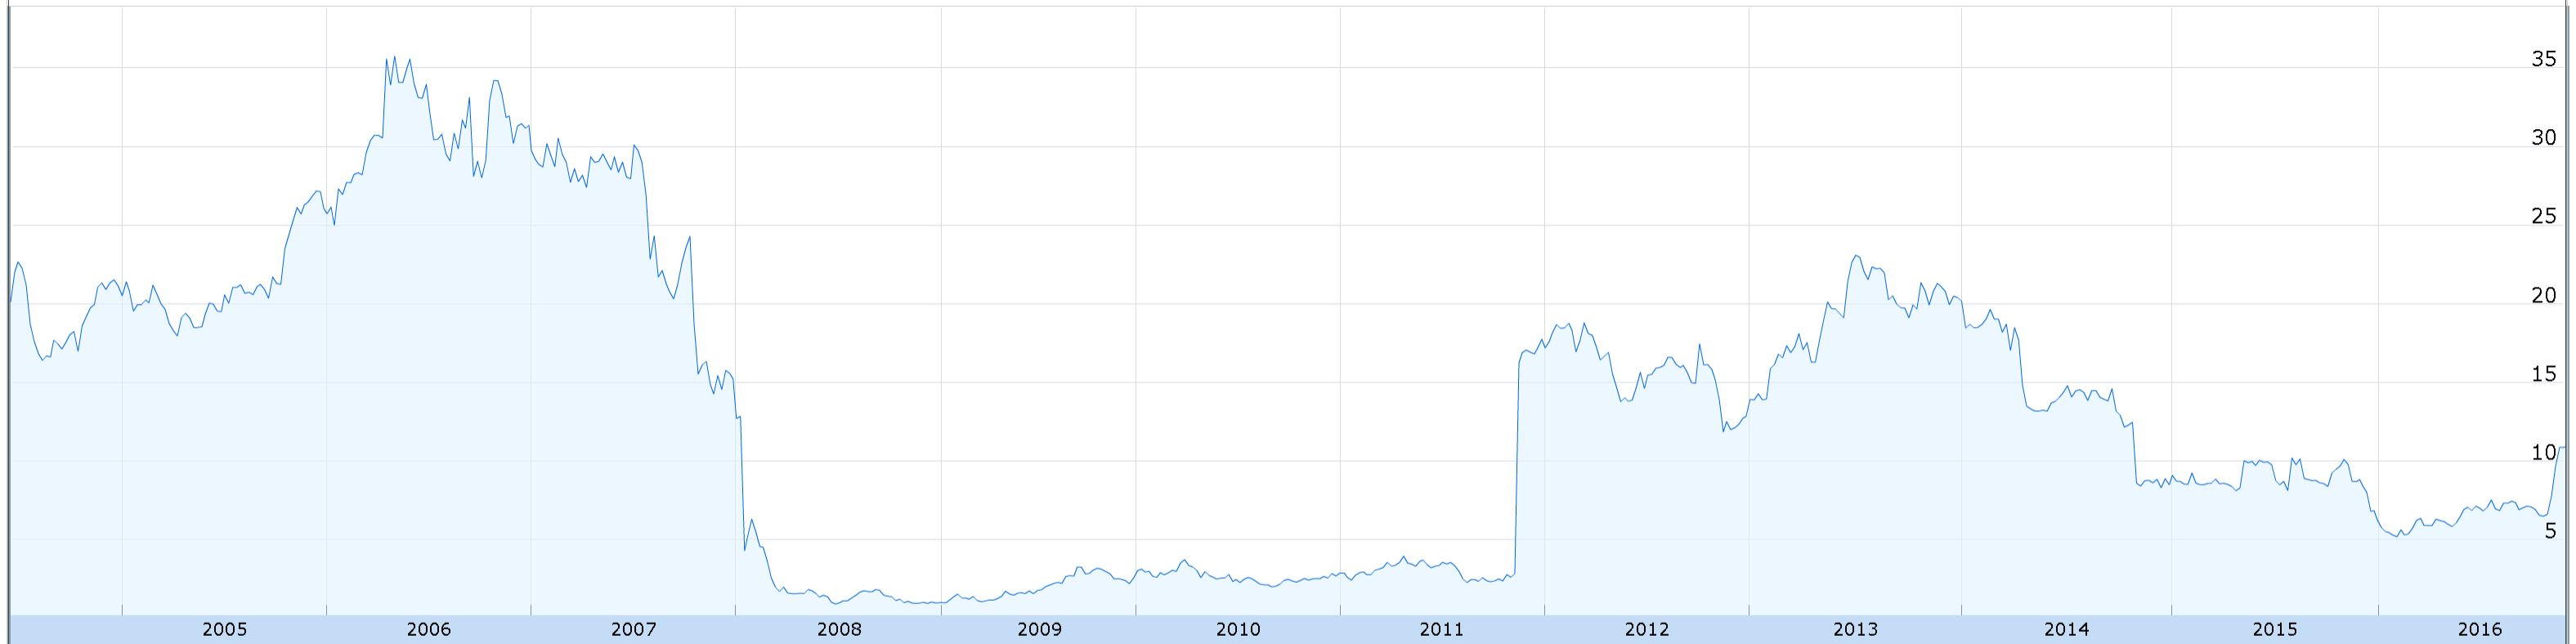 mg-stock-performance-since-ipo